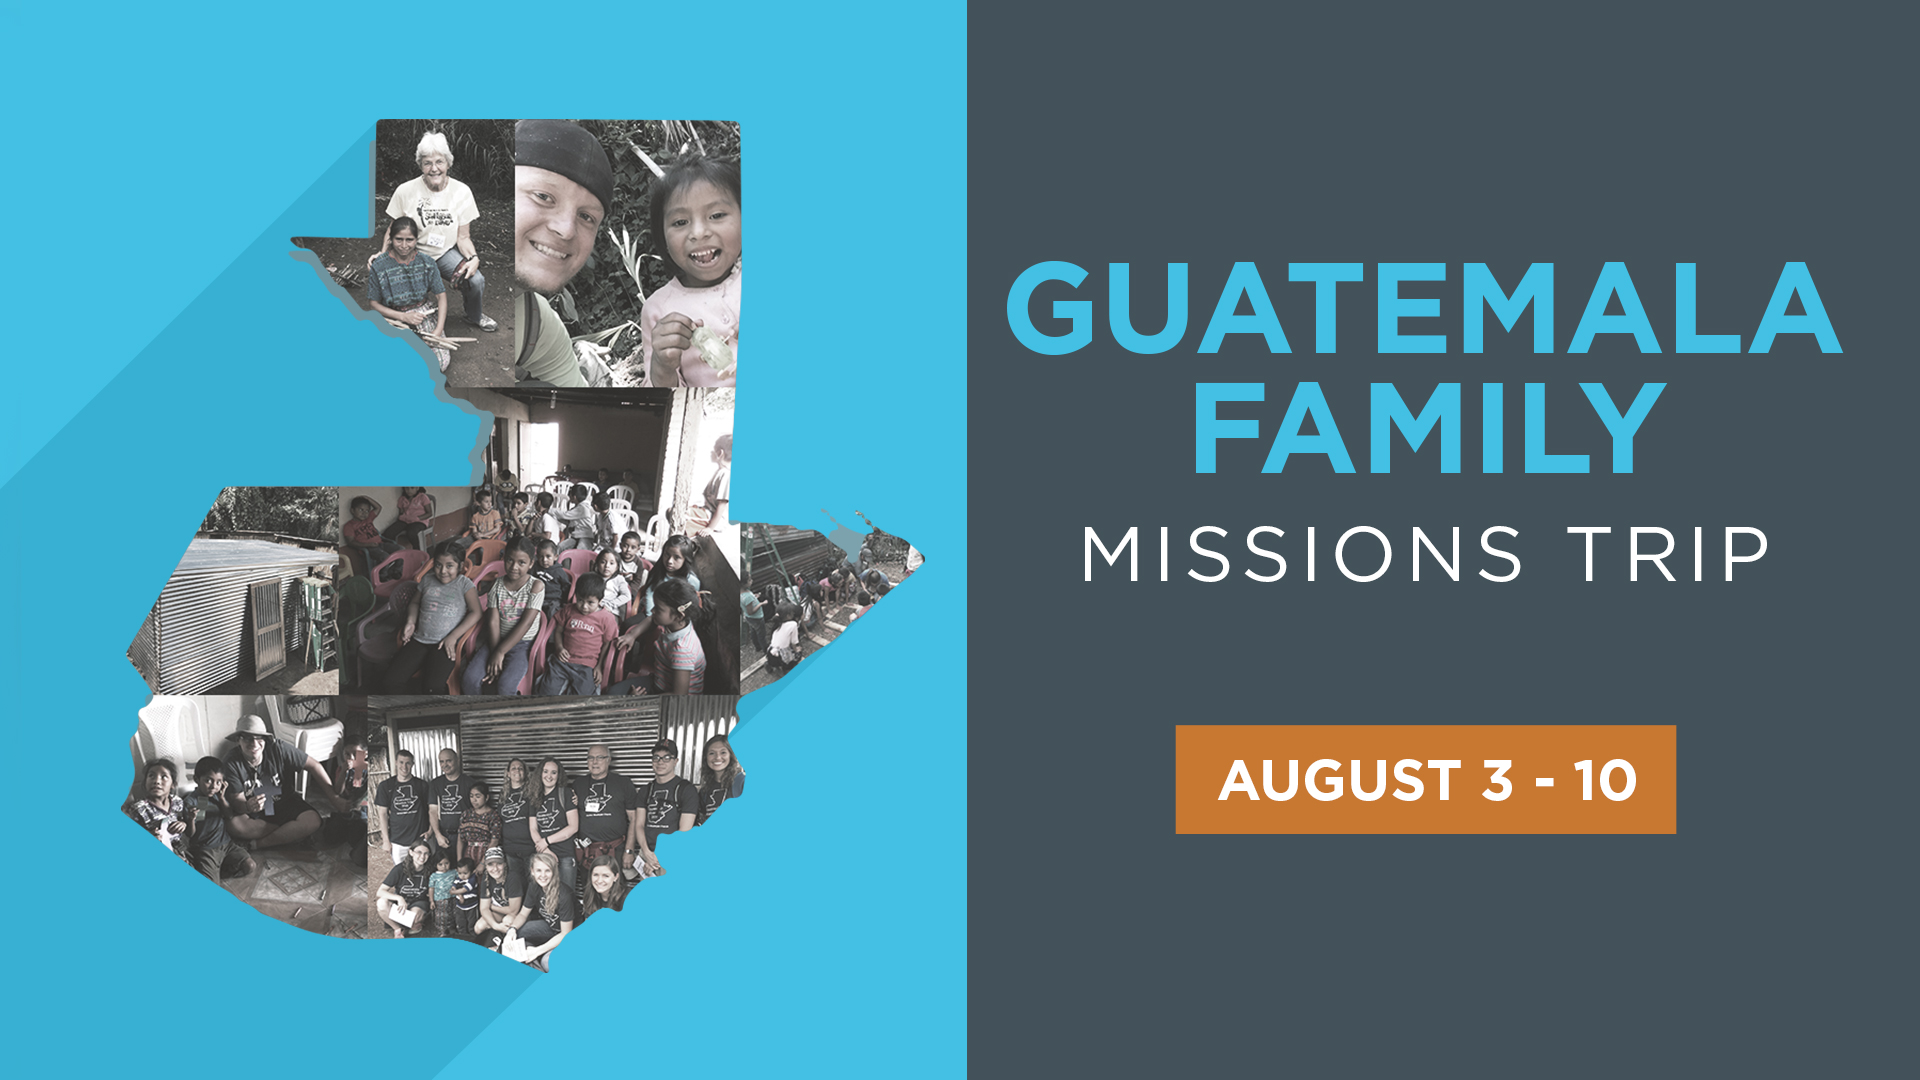 Guatemala Family Missions Trip